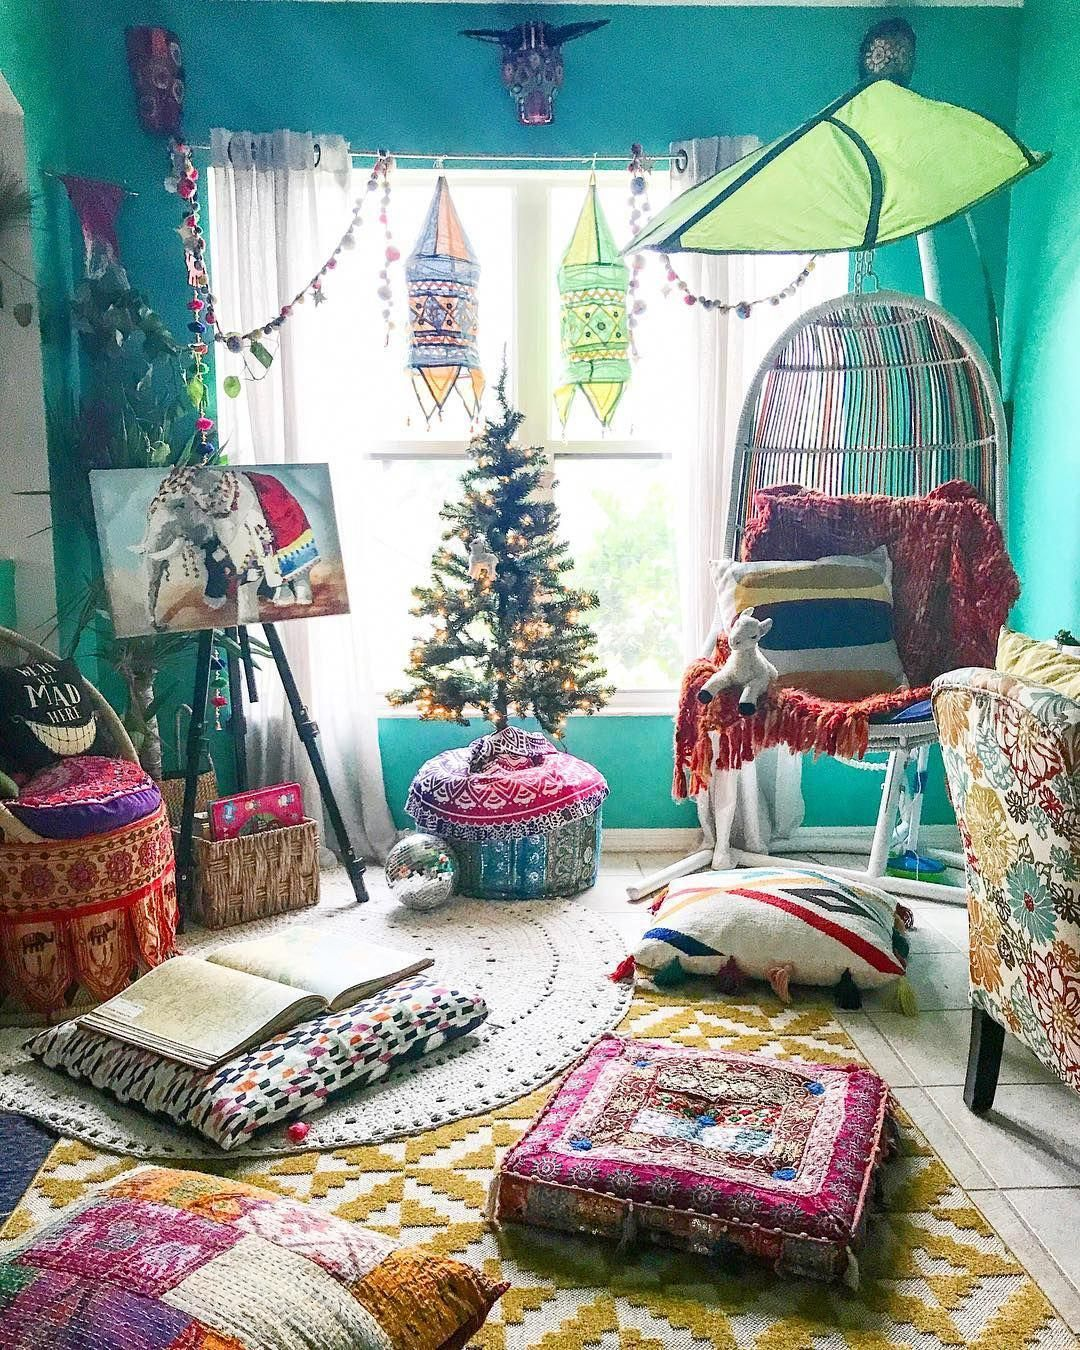 Bedroom Ideas For Delightful To Quite A Charming Vibe